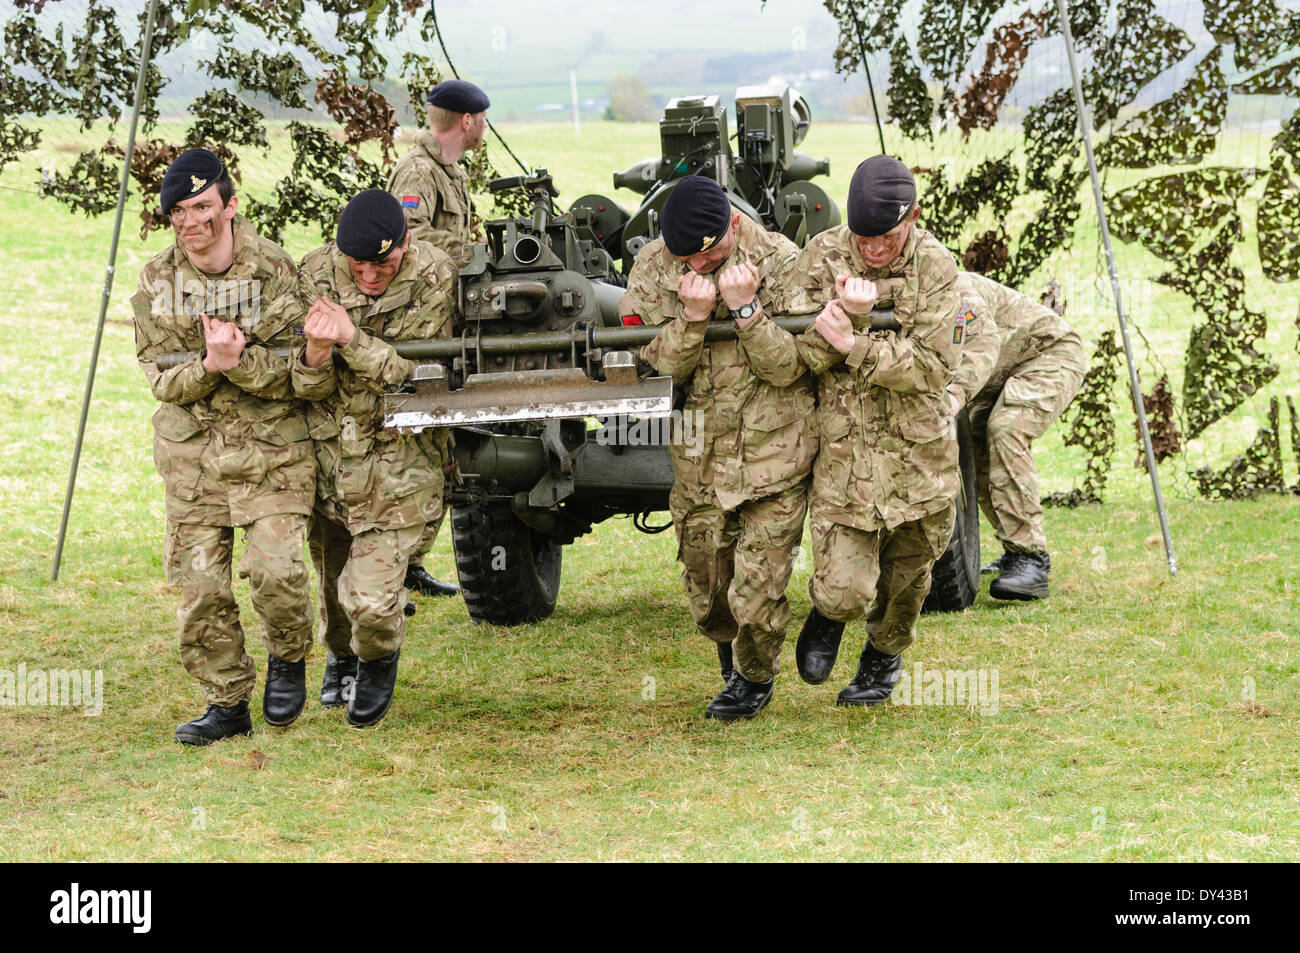 Soldiers from the Royal Artillery strain to pull a 105mm Light Artillery Gun - Stock Image